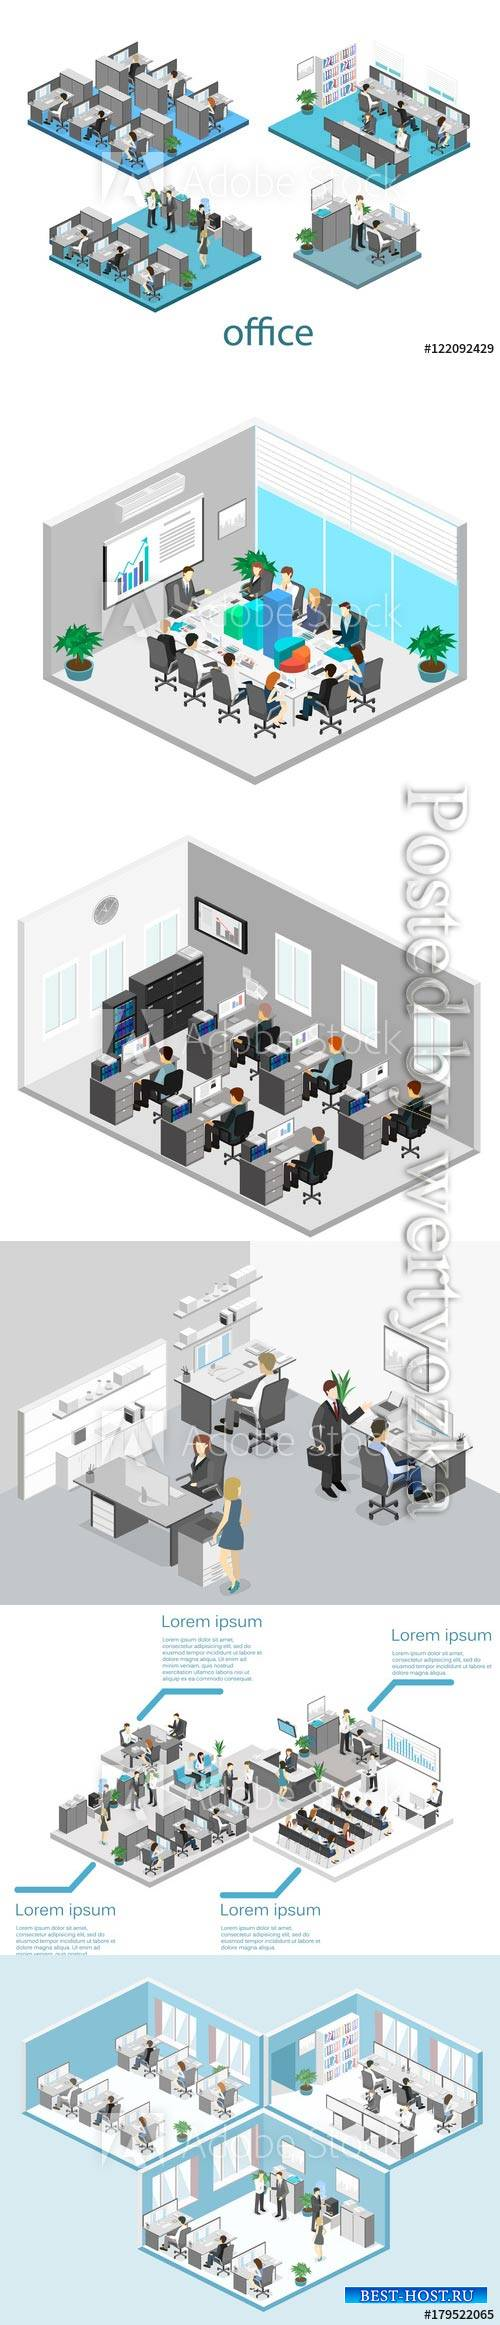 Flat 3d isometric abstract office floor interior